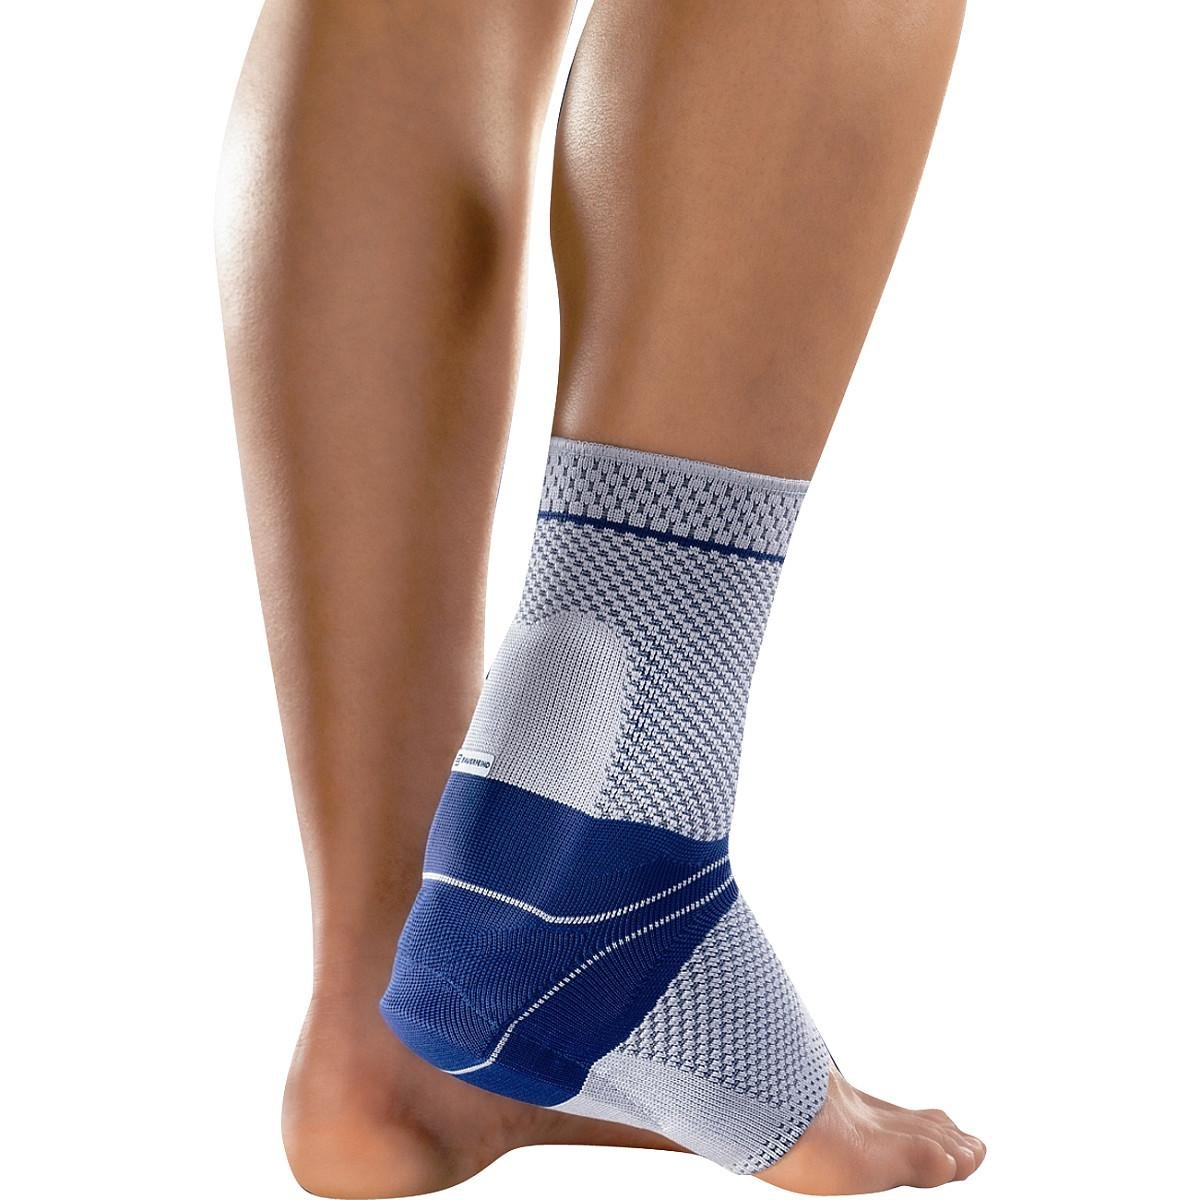 BAUERFEIND ACHILLOTRAIN ACHILLES TENDON SUPPORT TITANIUM RIGHT SIZE 4 by Bauerfeind